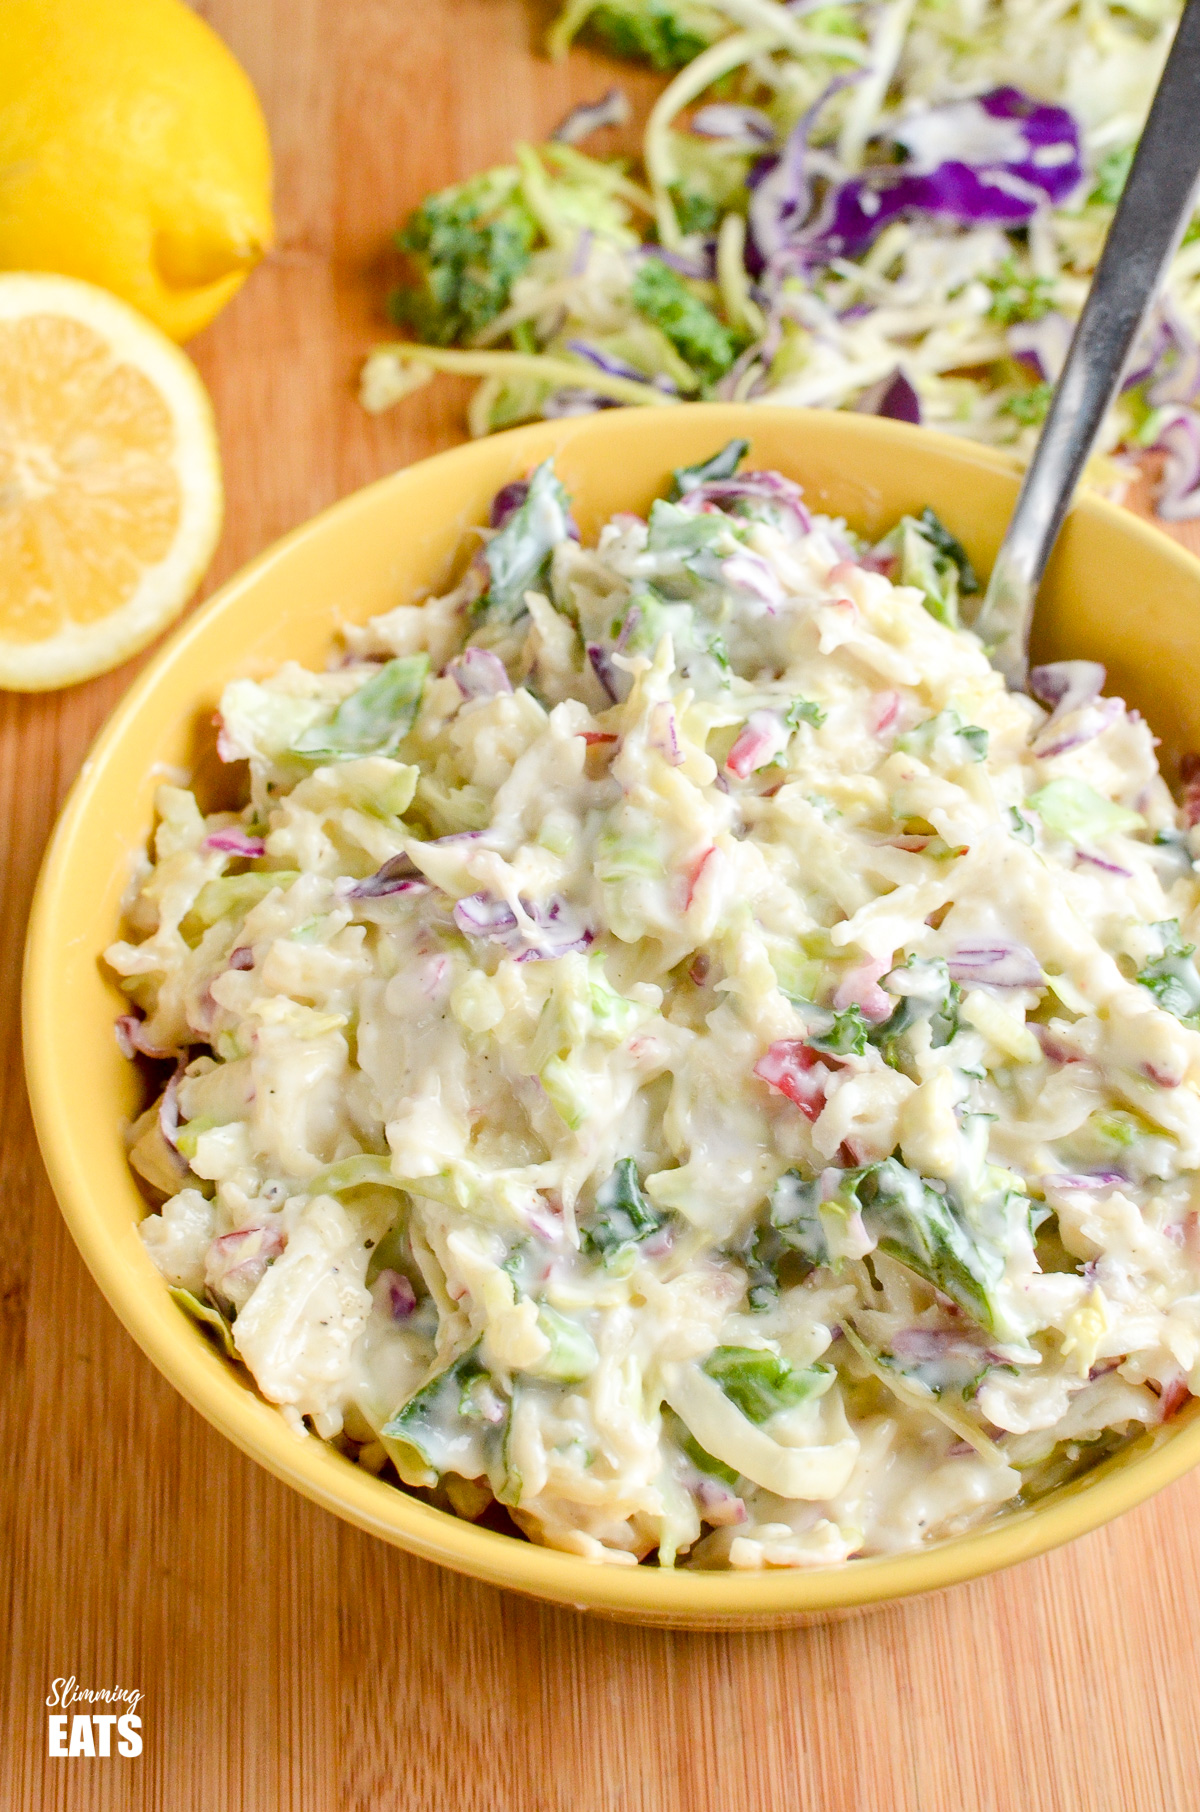 Sweet Tangy and Creamy Apple Coleslaw in a yellow bowl with scattered halved lemons and slaw